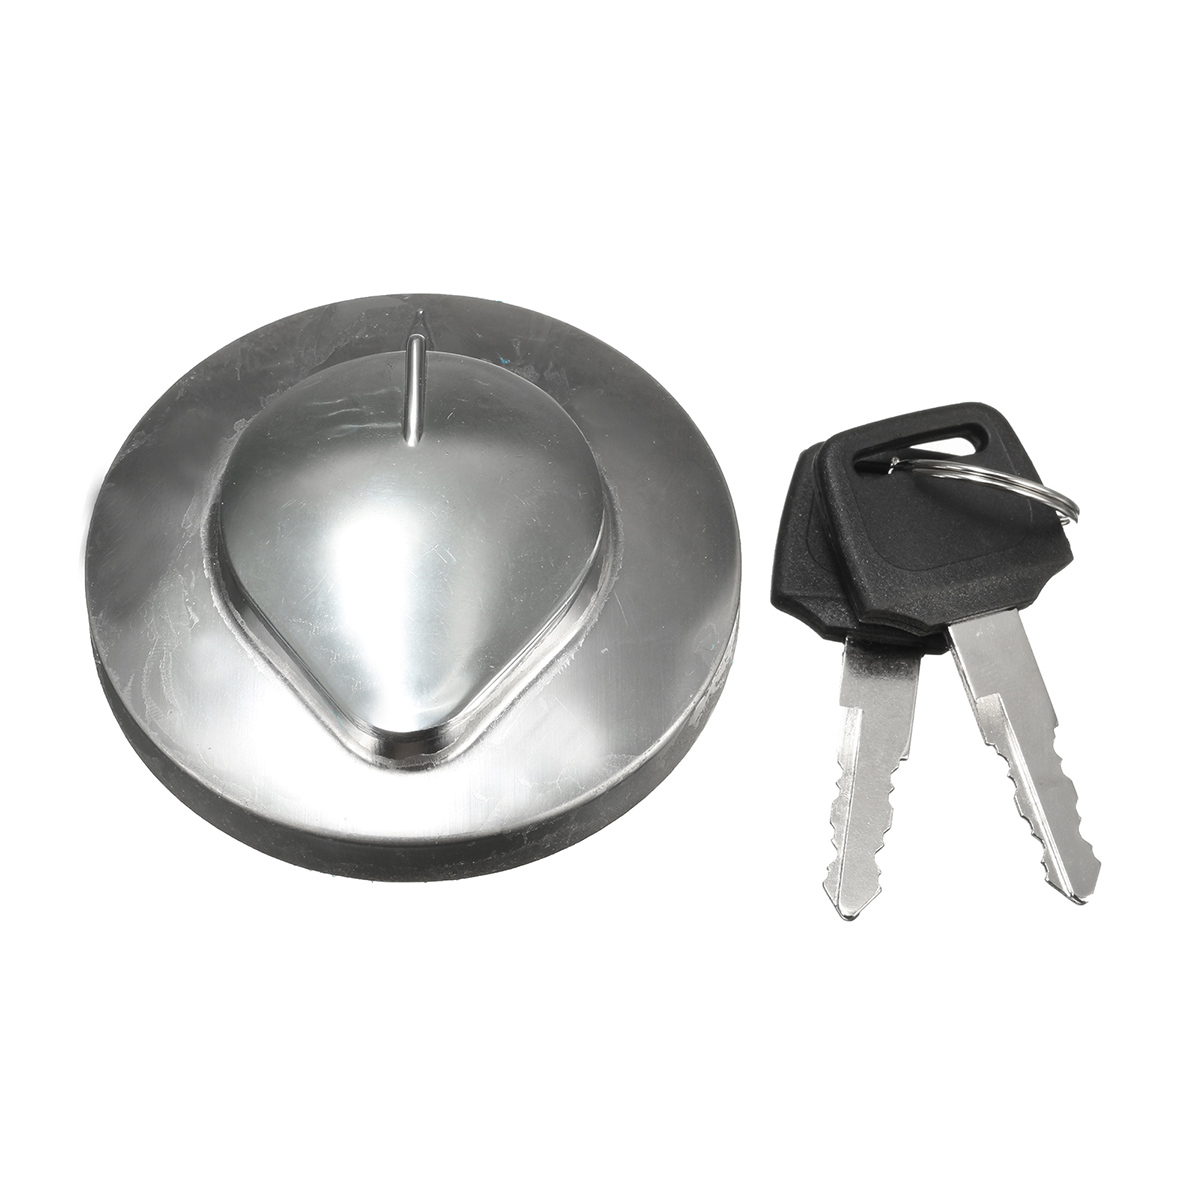 Gas Fuel Tank Cap Cover Lock For YAMAHA V-STAR VIRAGO X